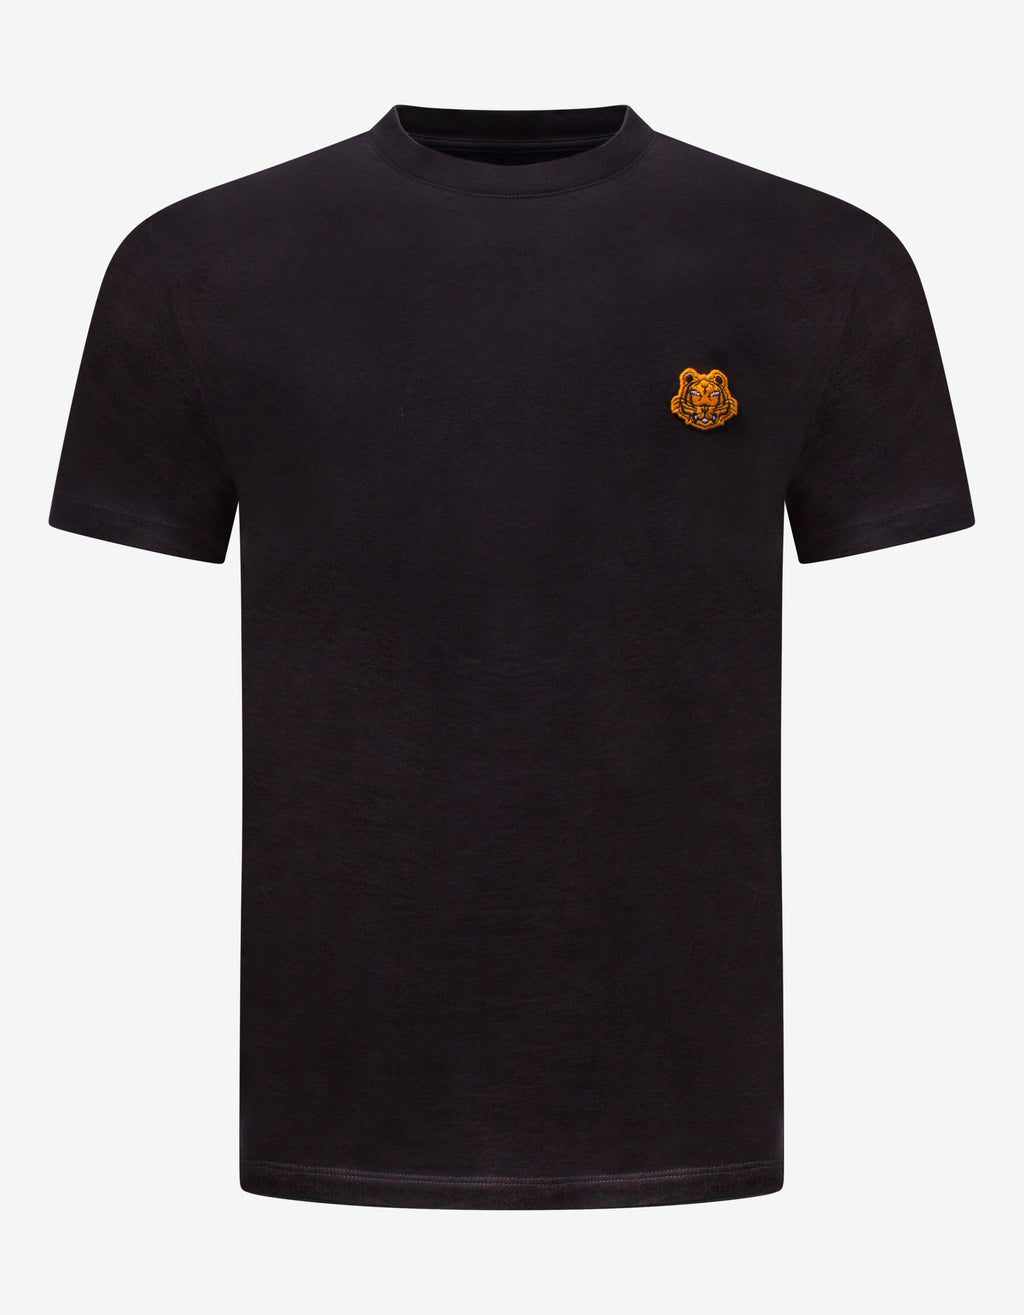 Black Tiger Crest T-Shirt